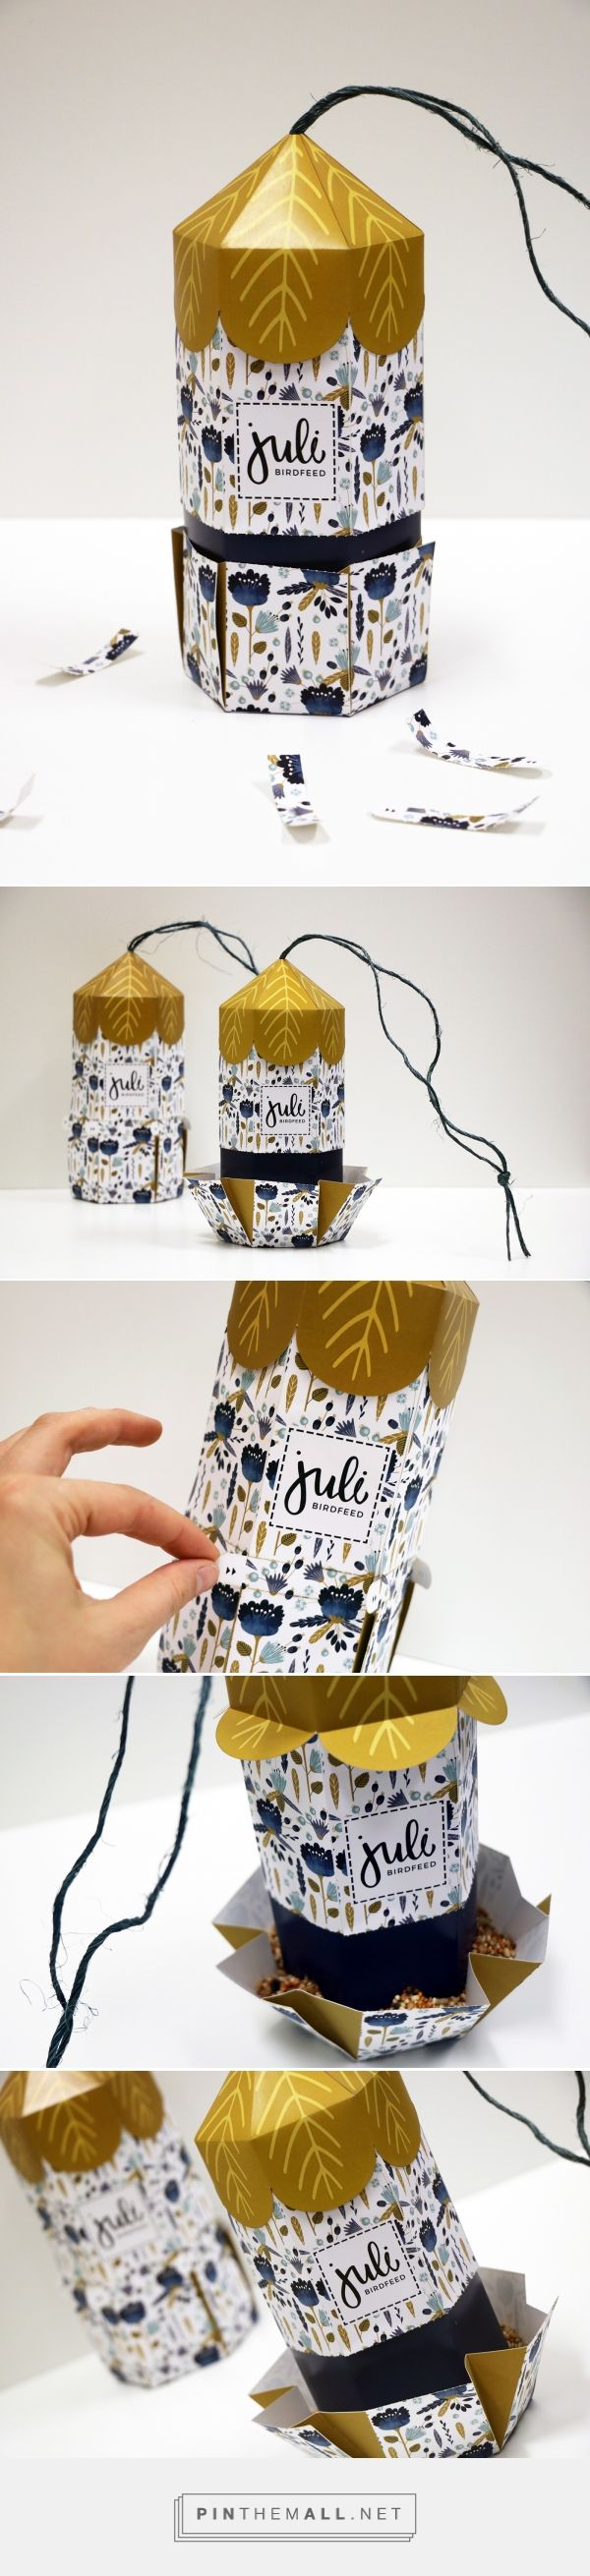 Juli Bird Feeder by Ashley Philip. Source: Behance. Pin curated by #SFields99 #packaging #design #inspiration # branding #structural #innovation